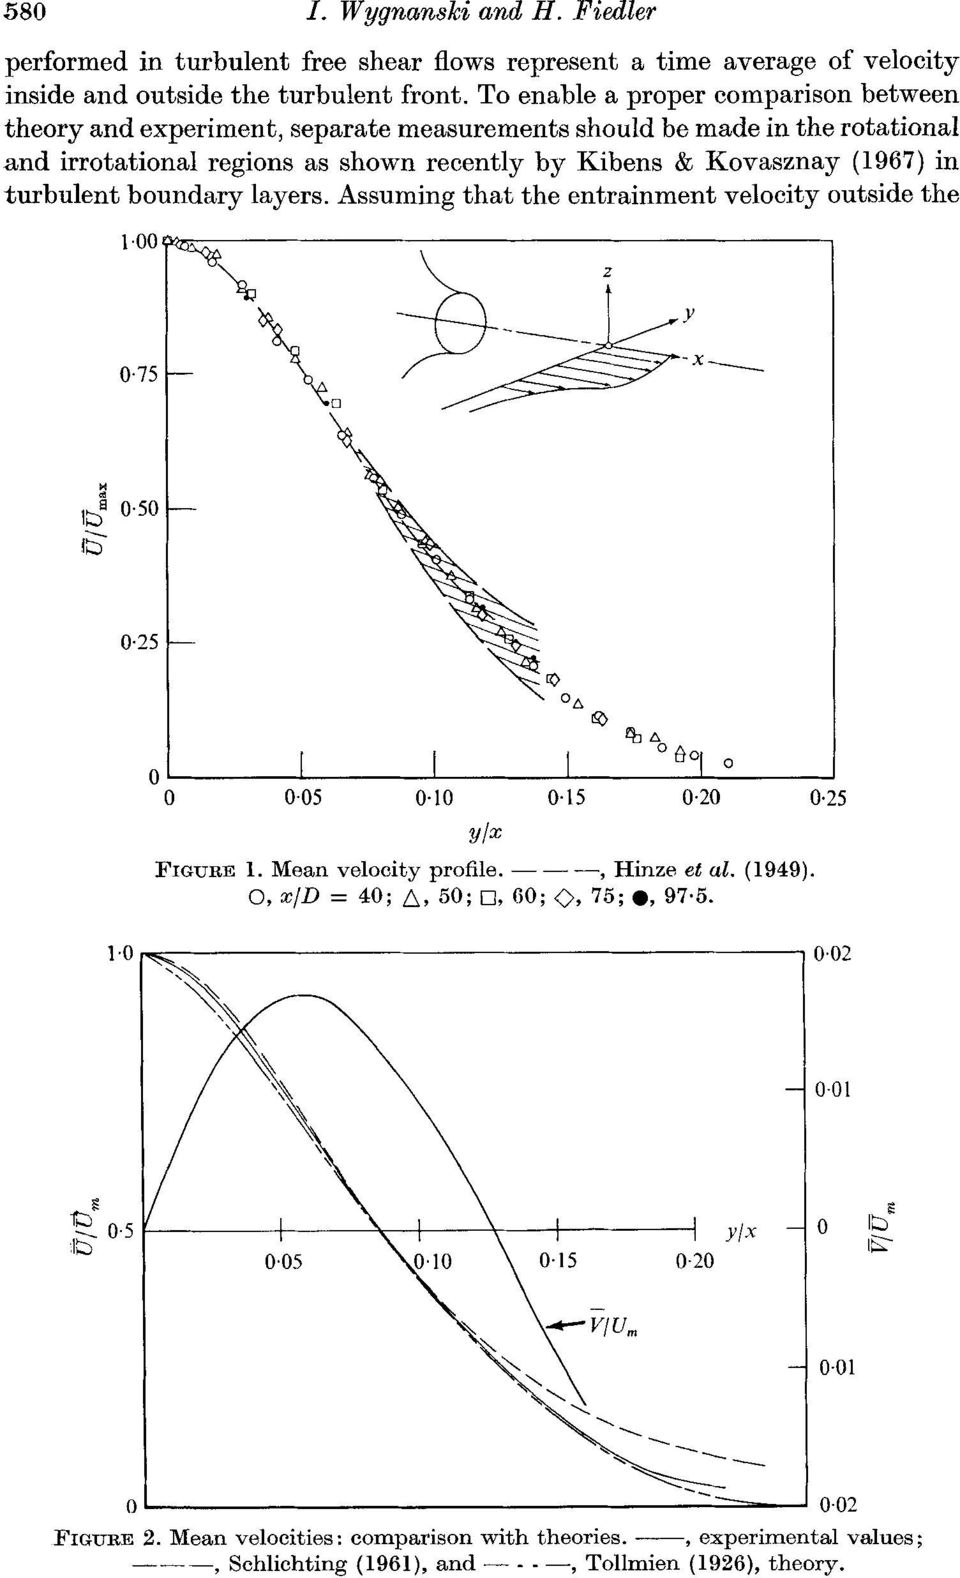 Kovasznay (1967) in turbulent boundary layers. Assuming that the entrainment velocity outside the 0 0.05 0.10 0.15 0.20 0.25 YlX FIGURE 1. Mean velocity profile. ---, Hinze et uz.